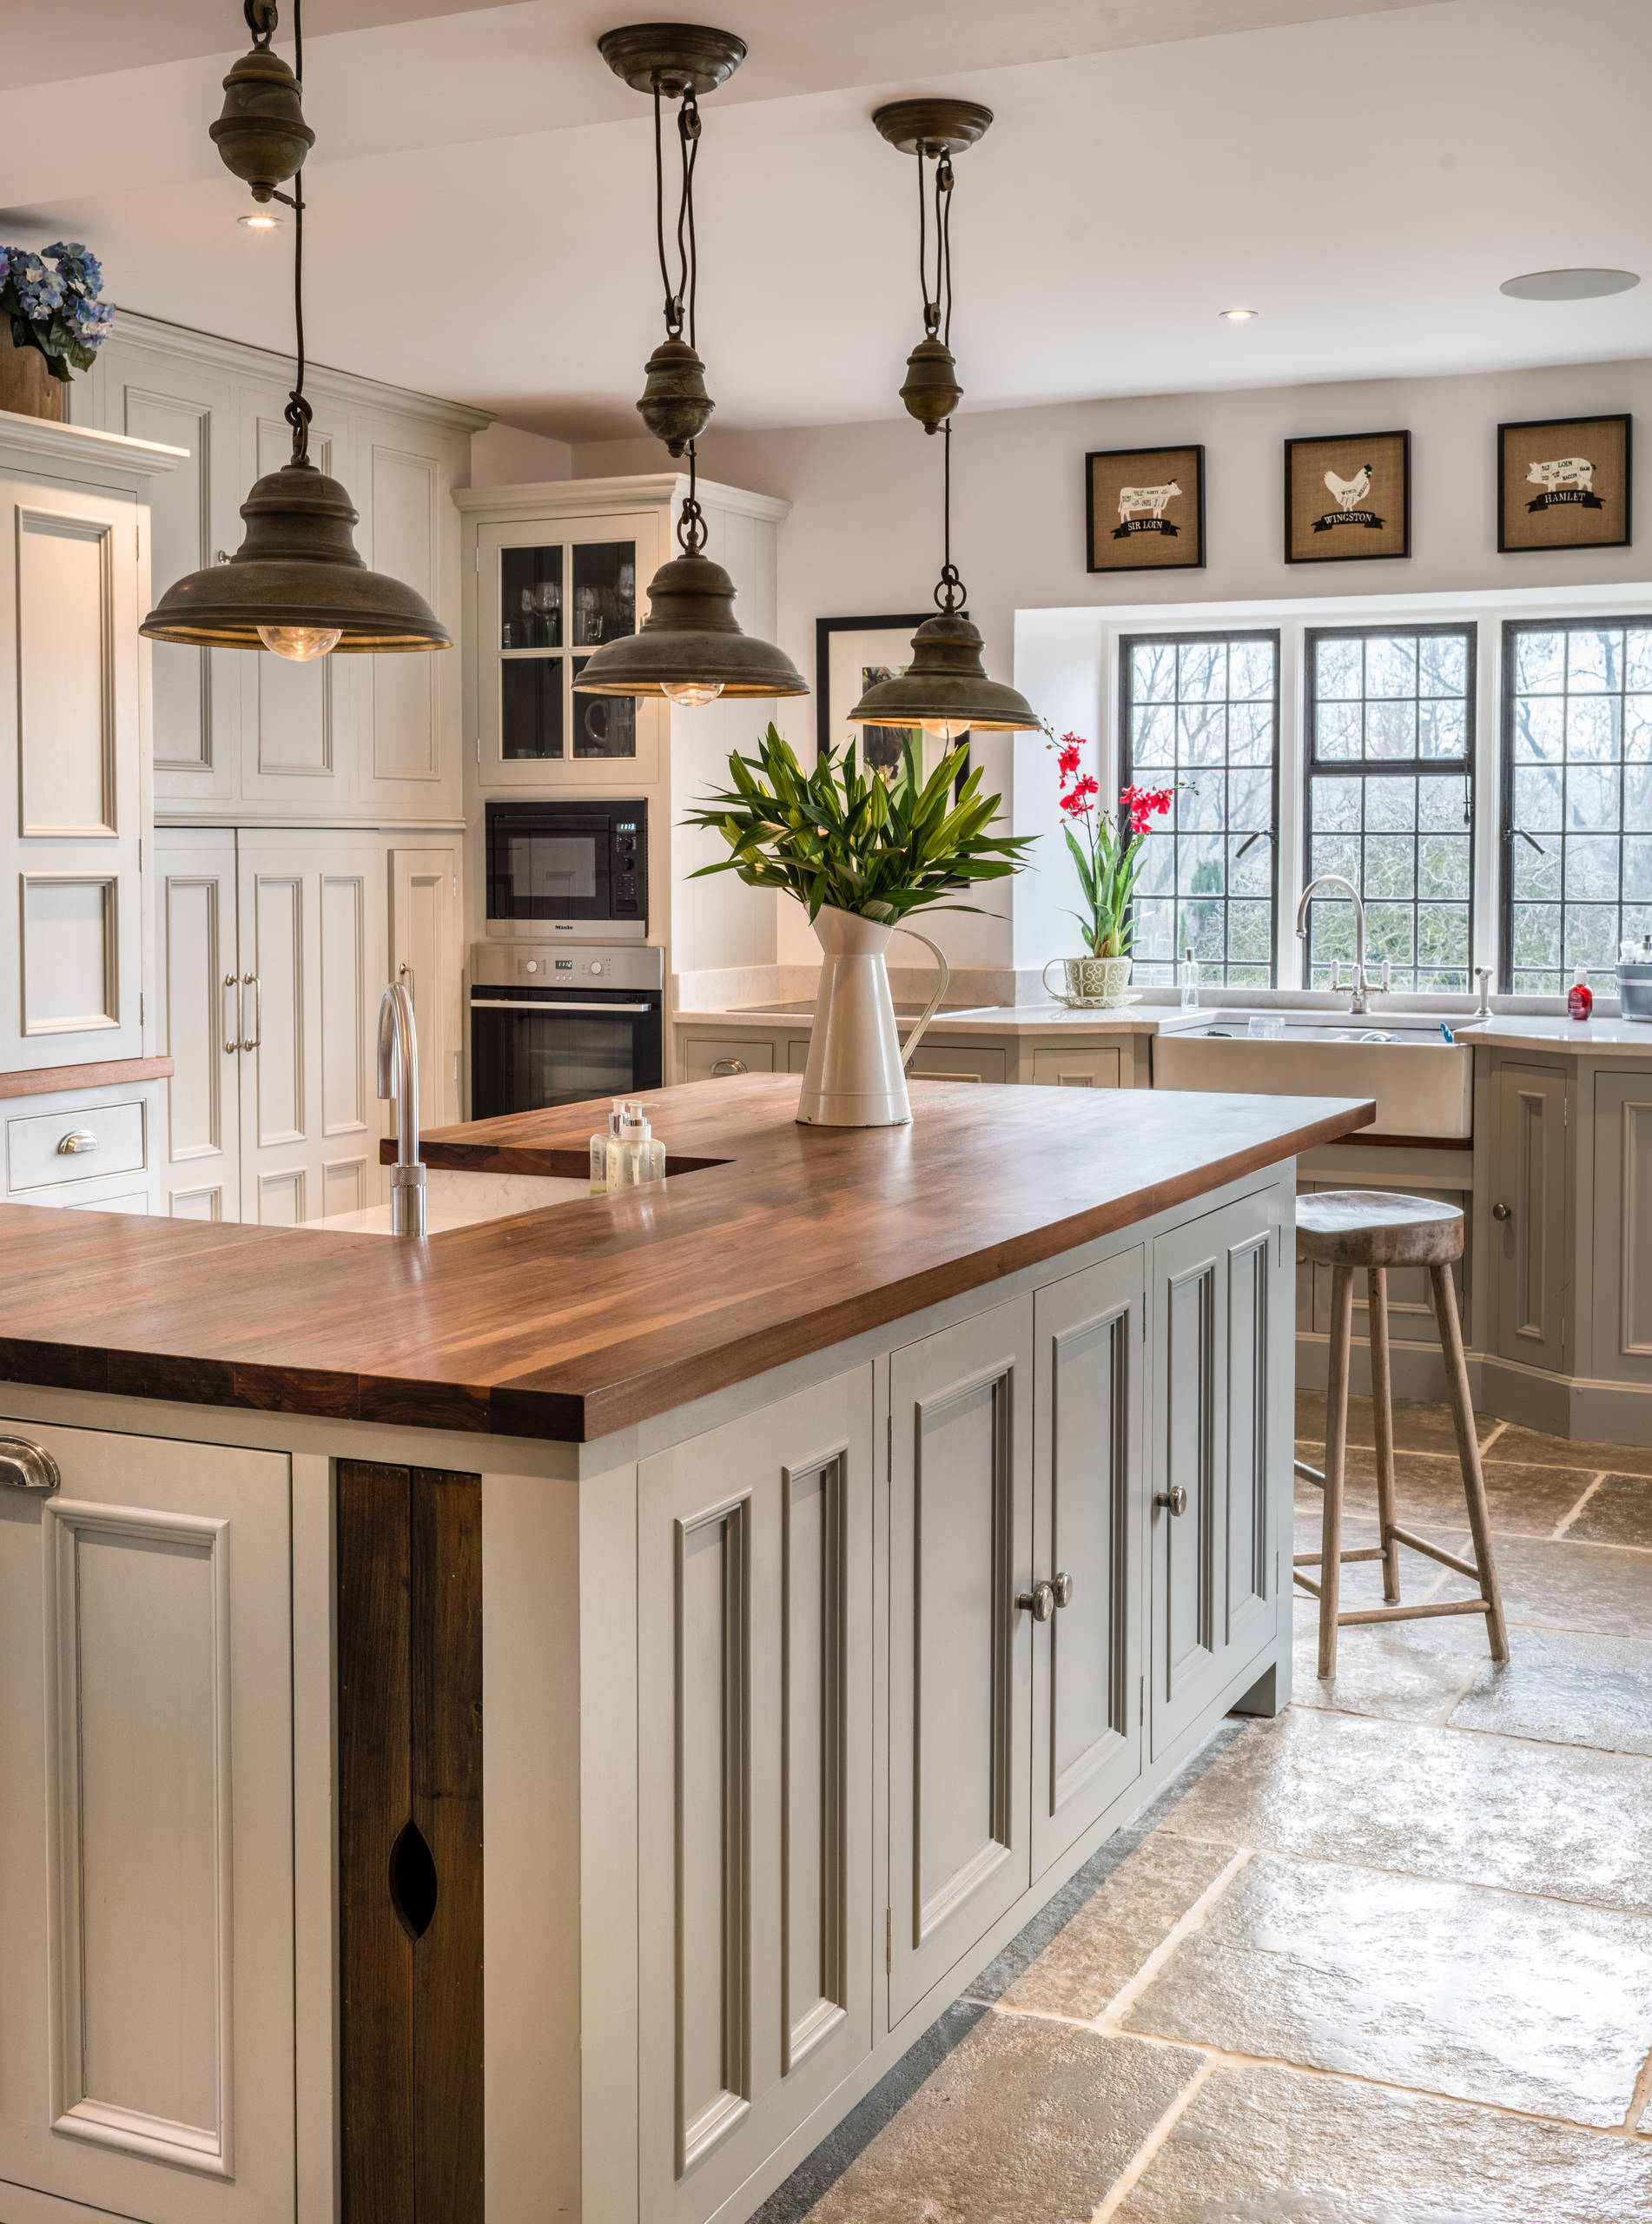 75 Beautiful Farmhouse Kitchen With An Island Pictures Ideas January 2021 Houzz